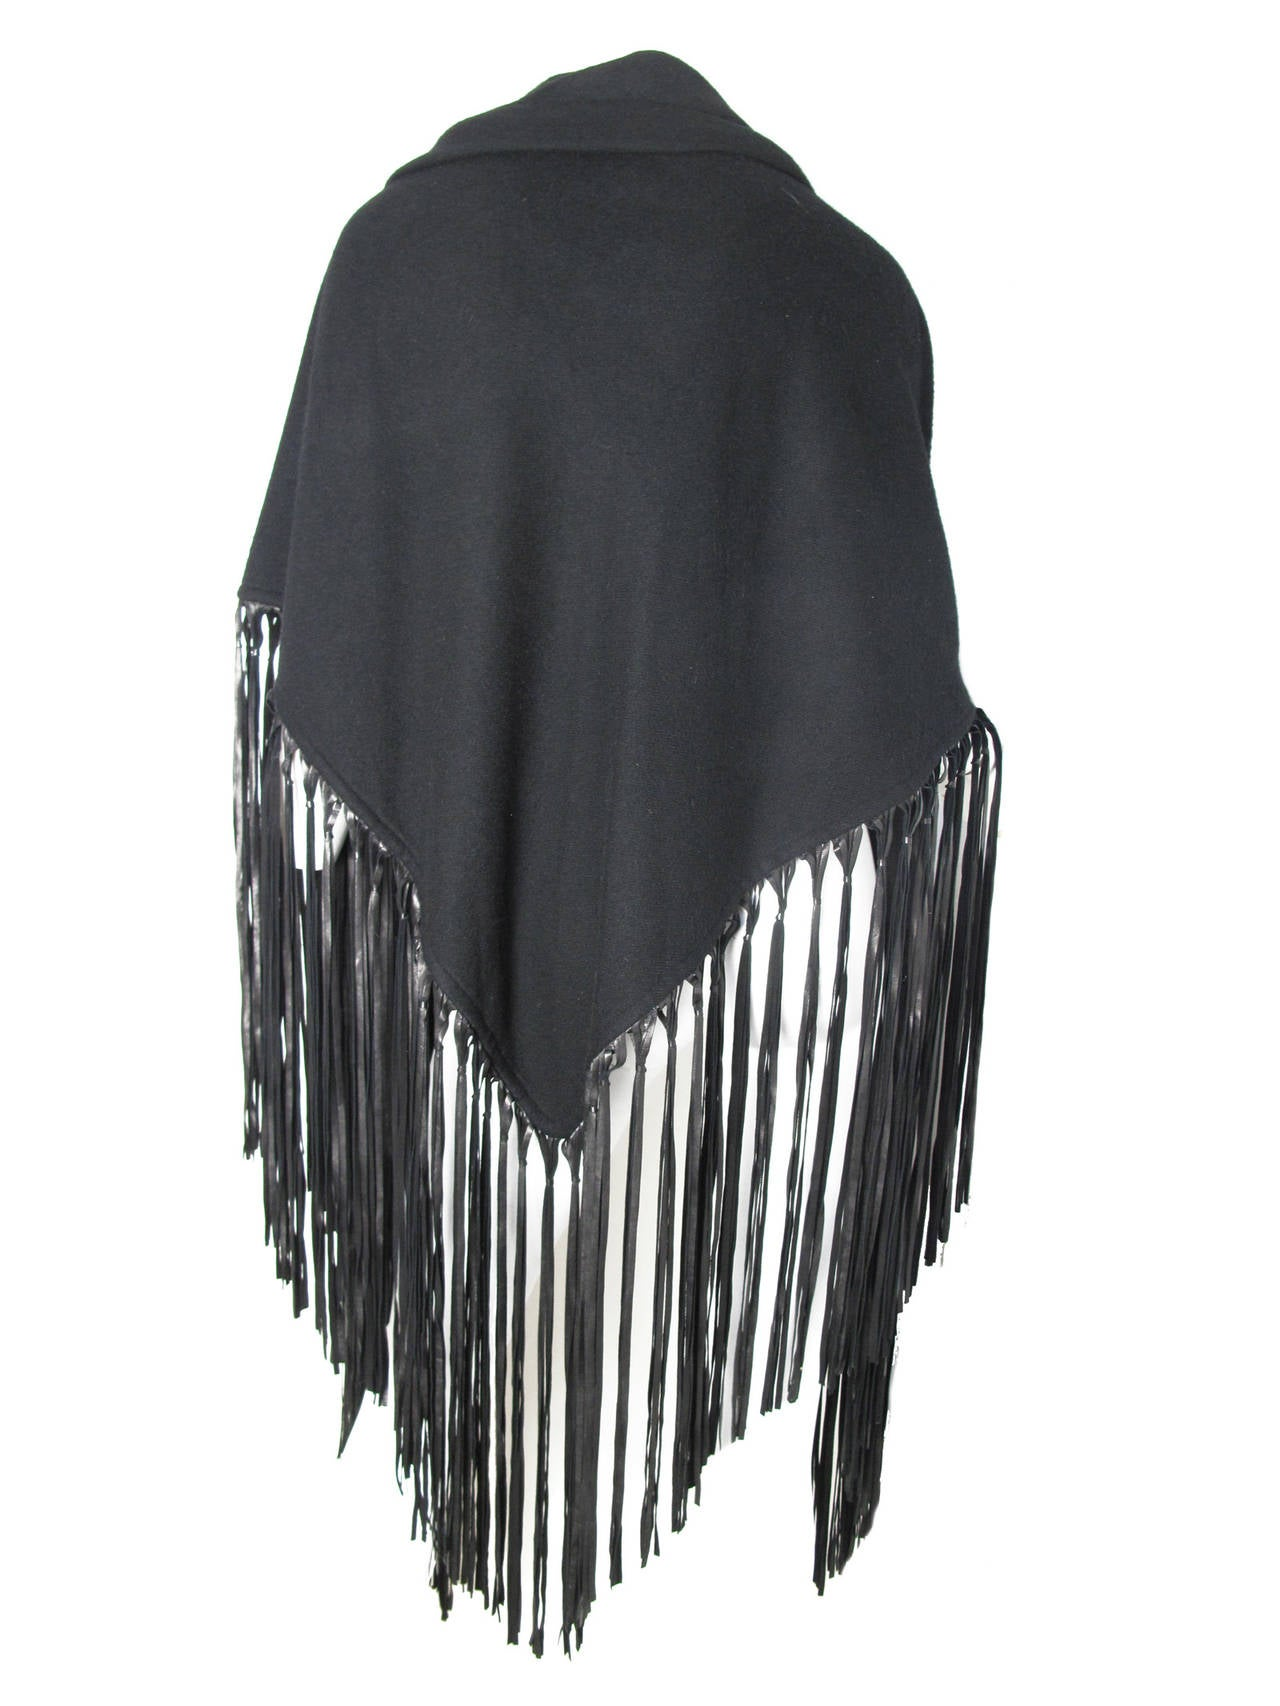 1980s Hermes Black Wool Shawl with Leather Fringe In Excellent Condition For Sale In Austin, TX